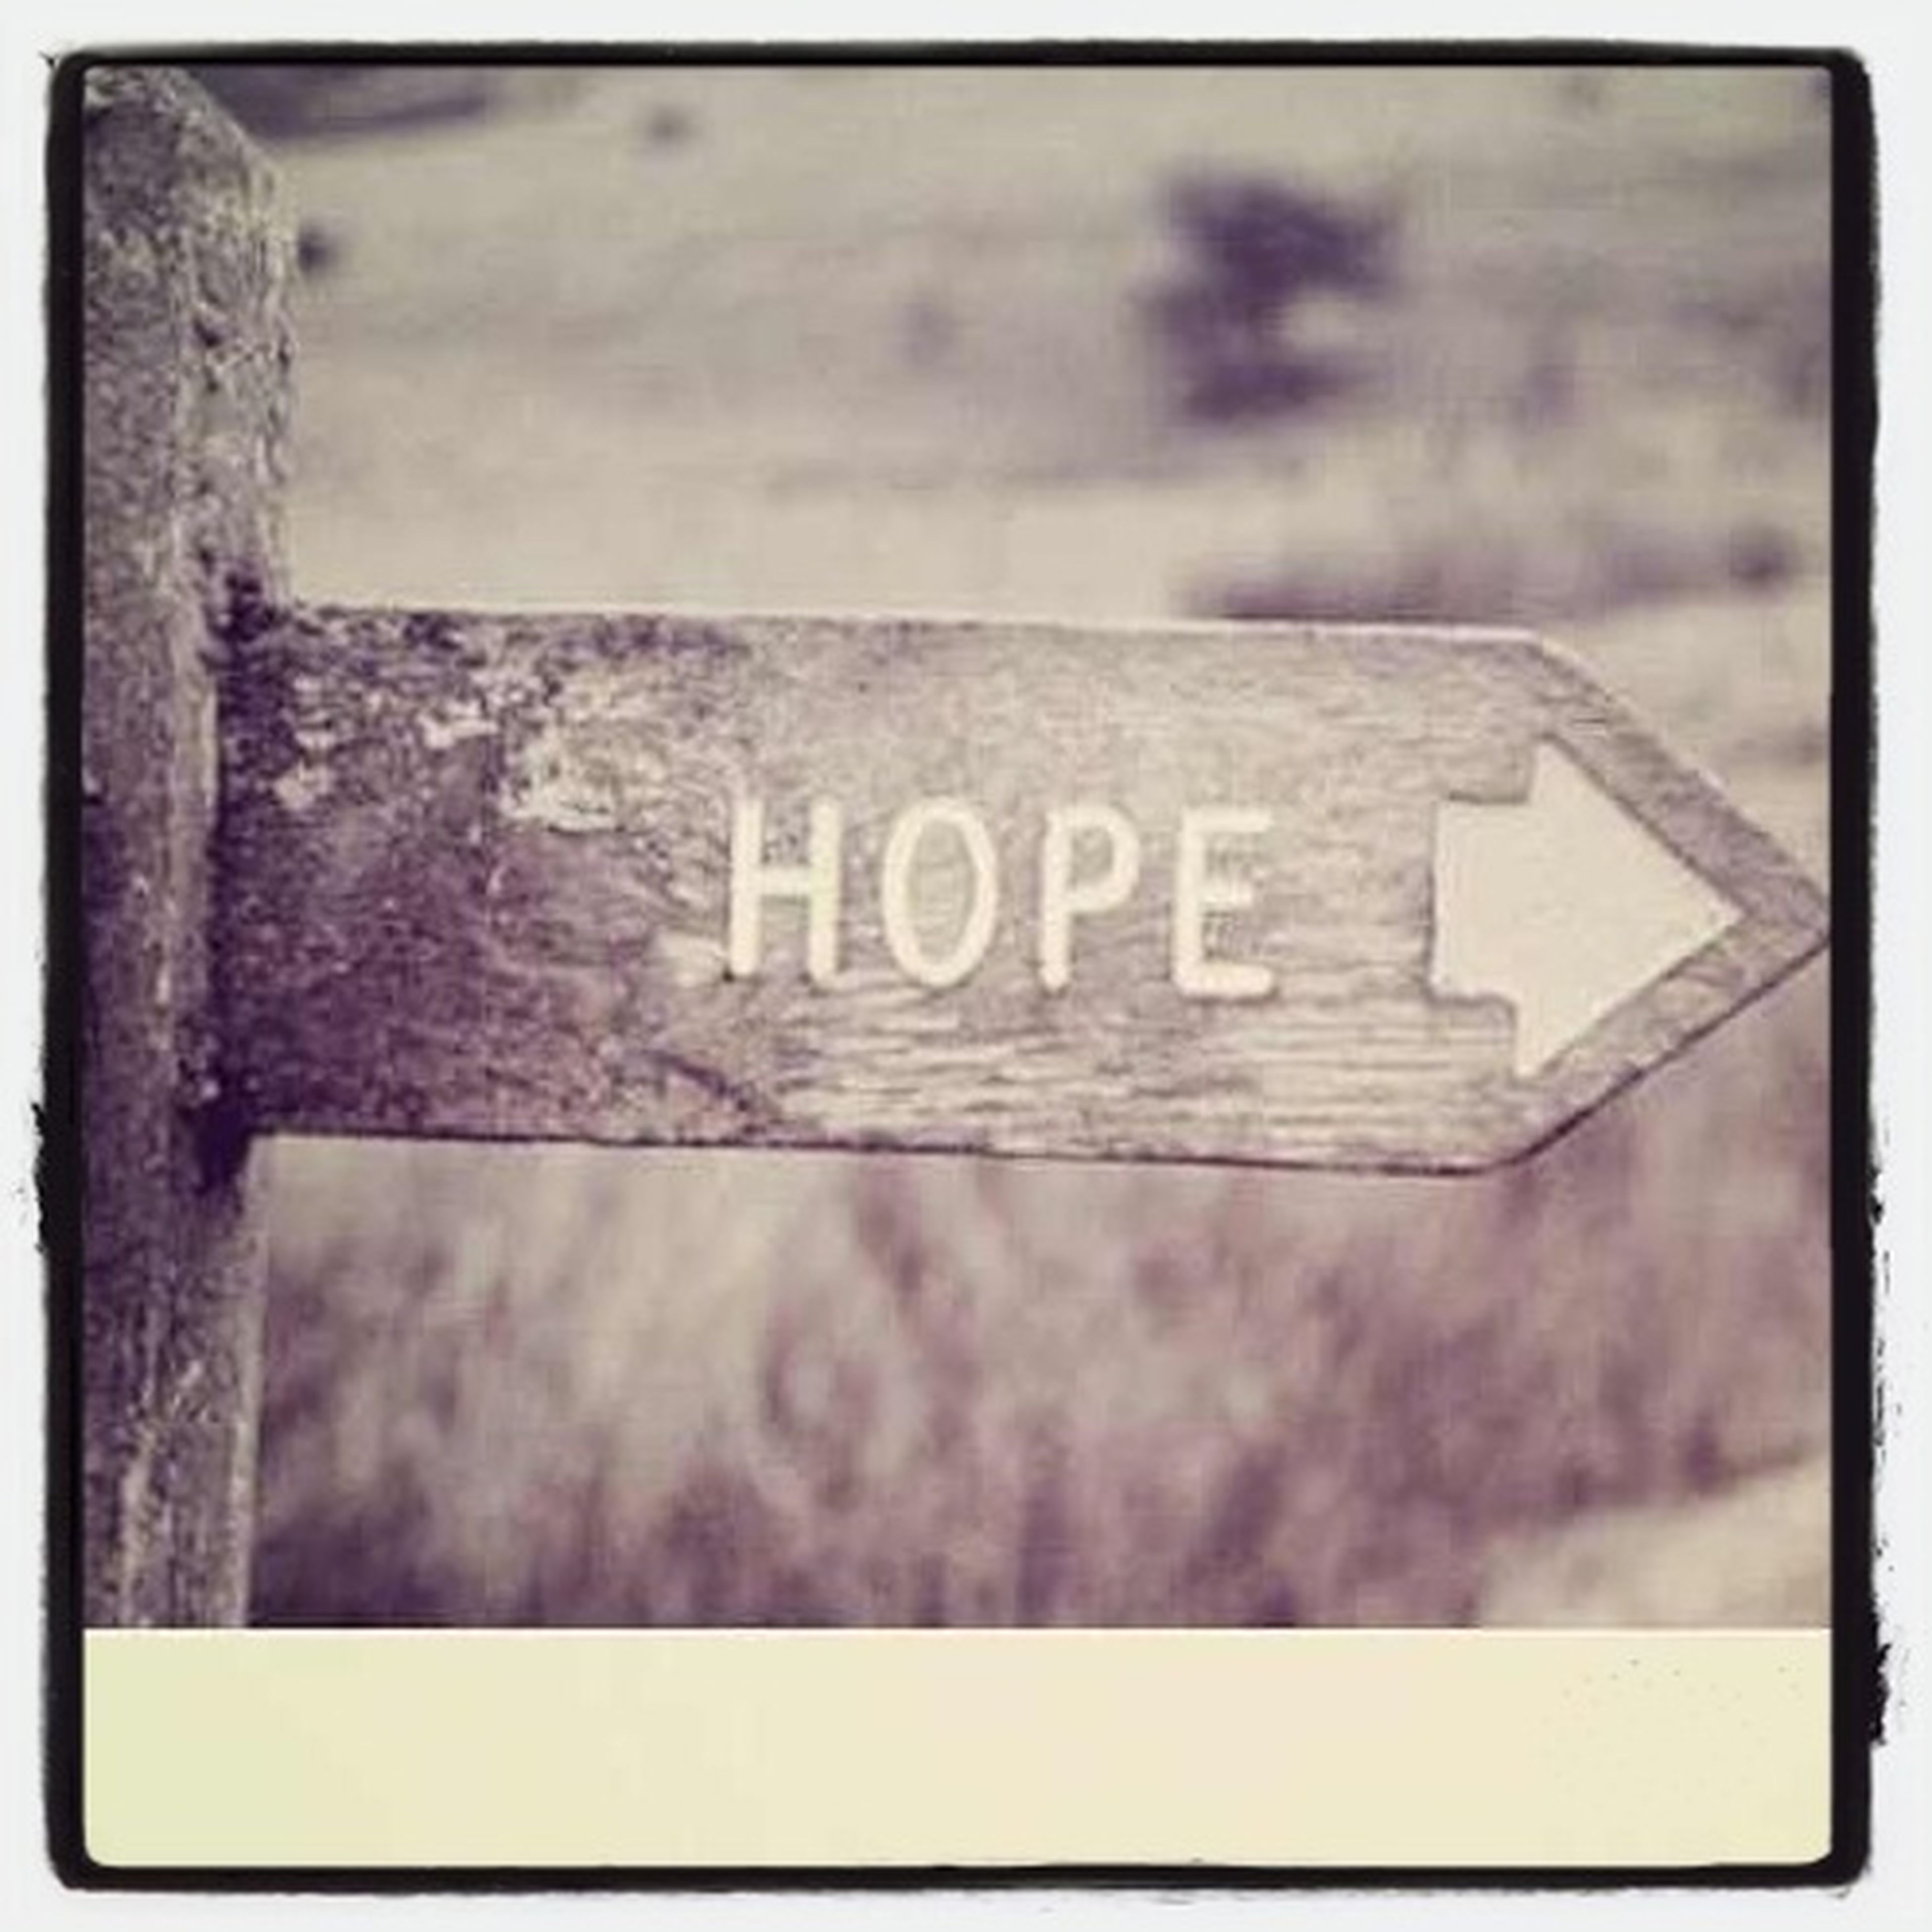 H.O.P.E= Hold On Pain Ends